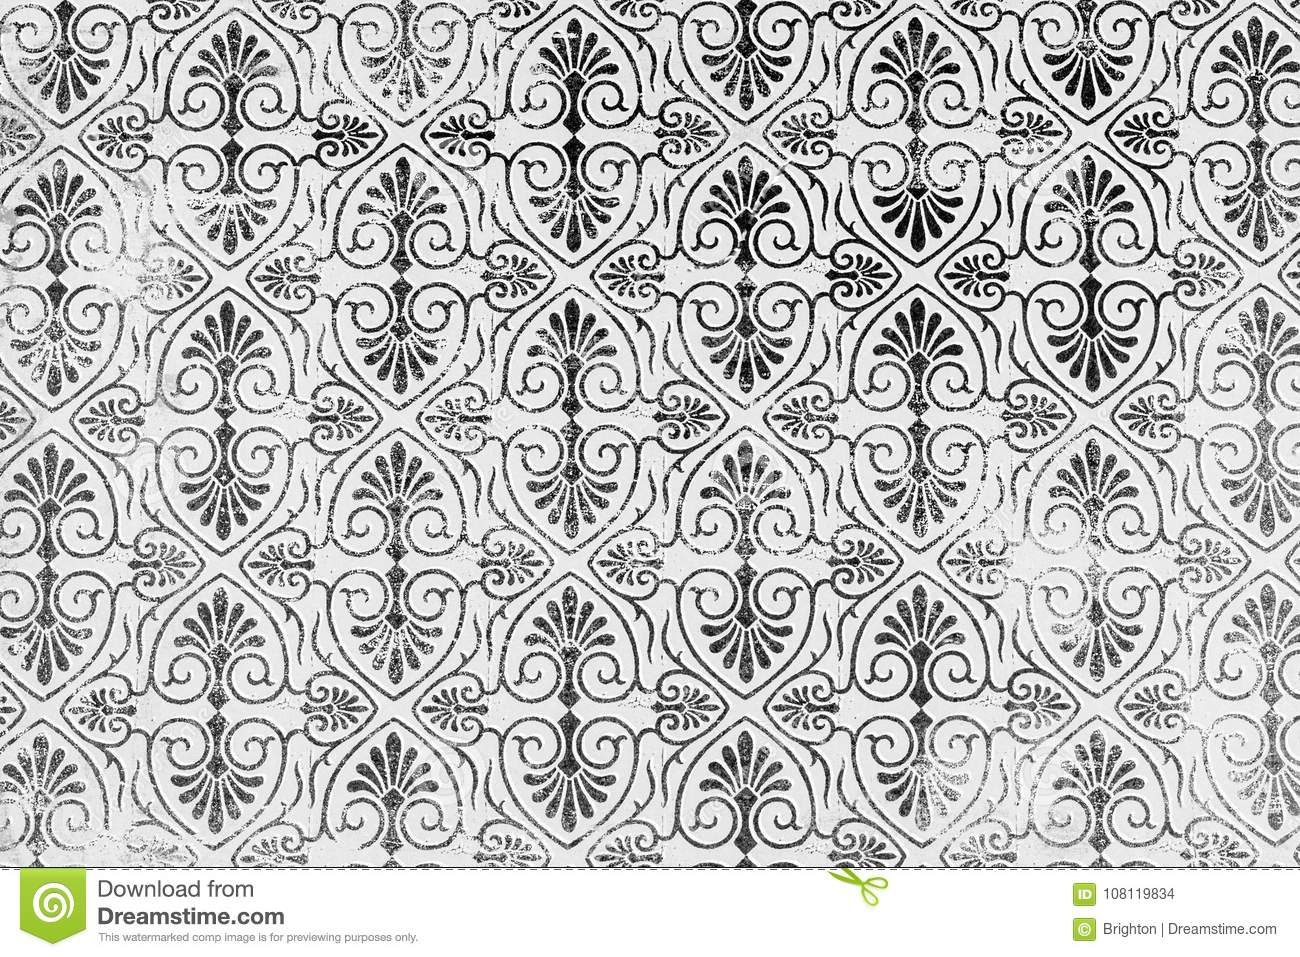 Classic damask patterned background.